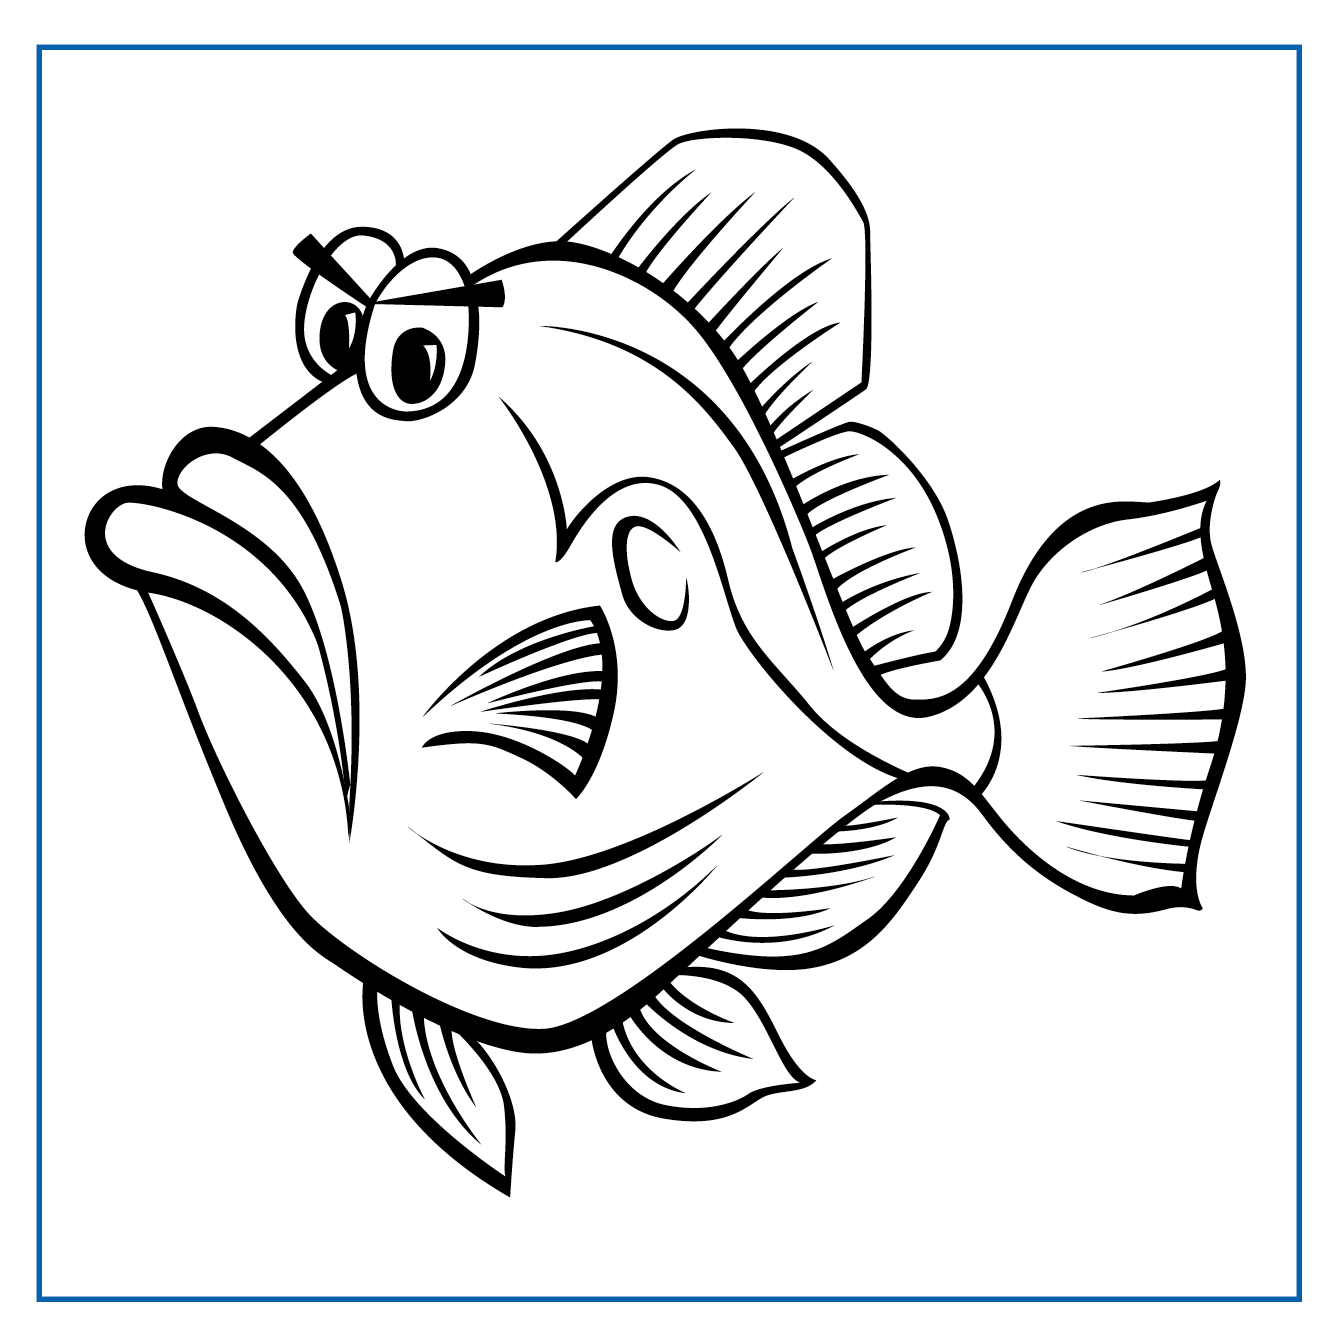 Peter John Dory - Click on my picture to print me out and colour me in